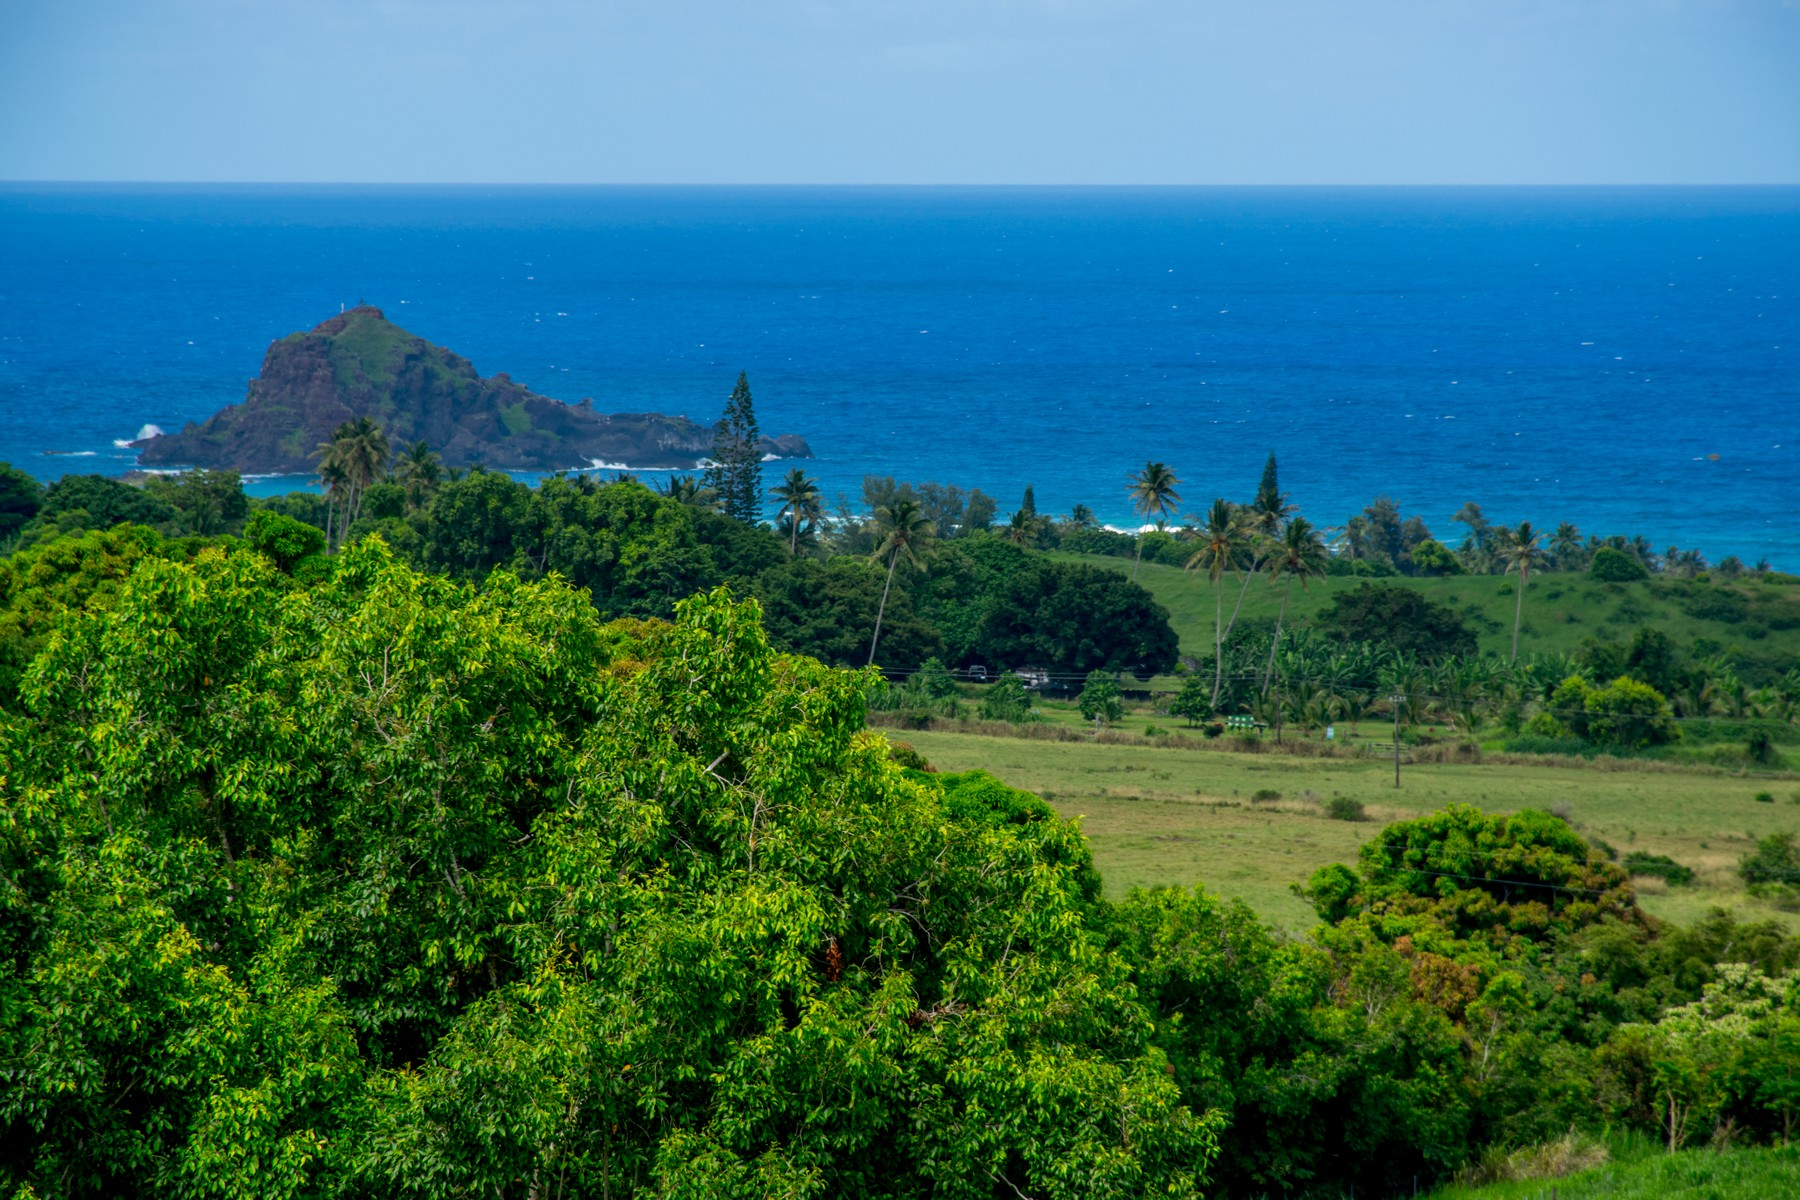 Land for Sale at Over 15 Acres in Beauful Maka'alae-Hana, Maui 153 Kapia Road, Lot#4-Parcel #69 Hana, Hawaii, 96713 United States